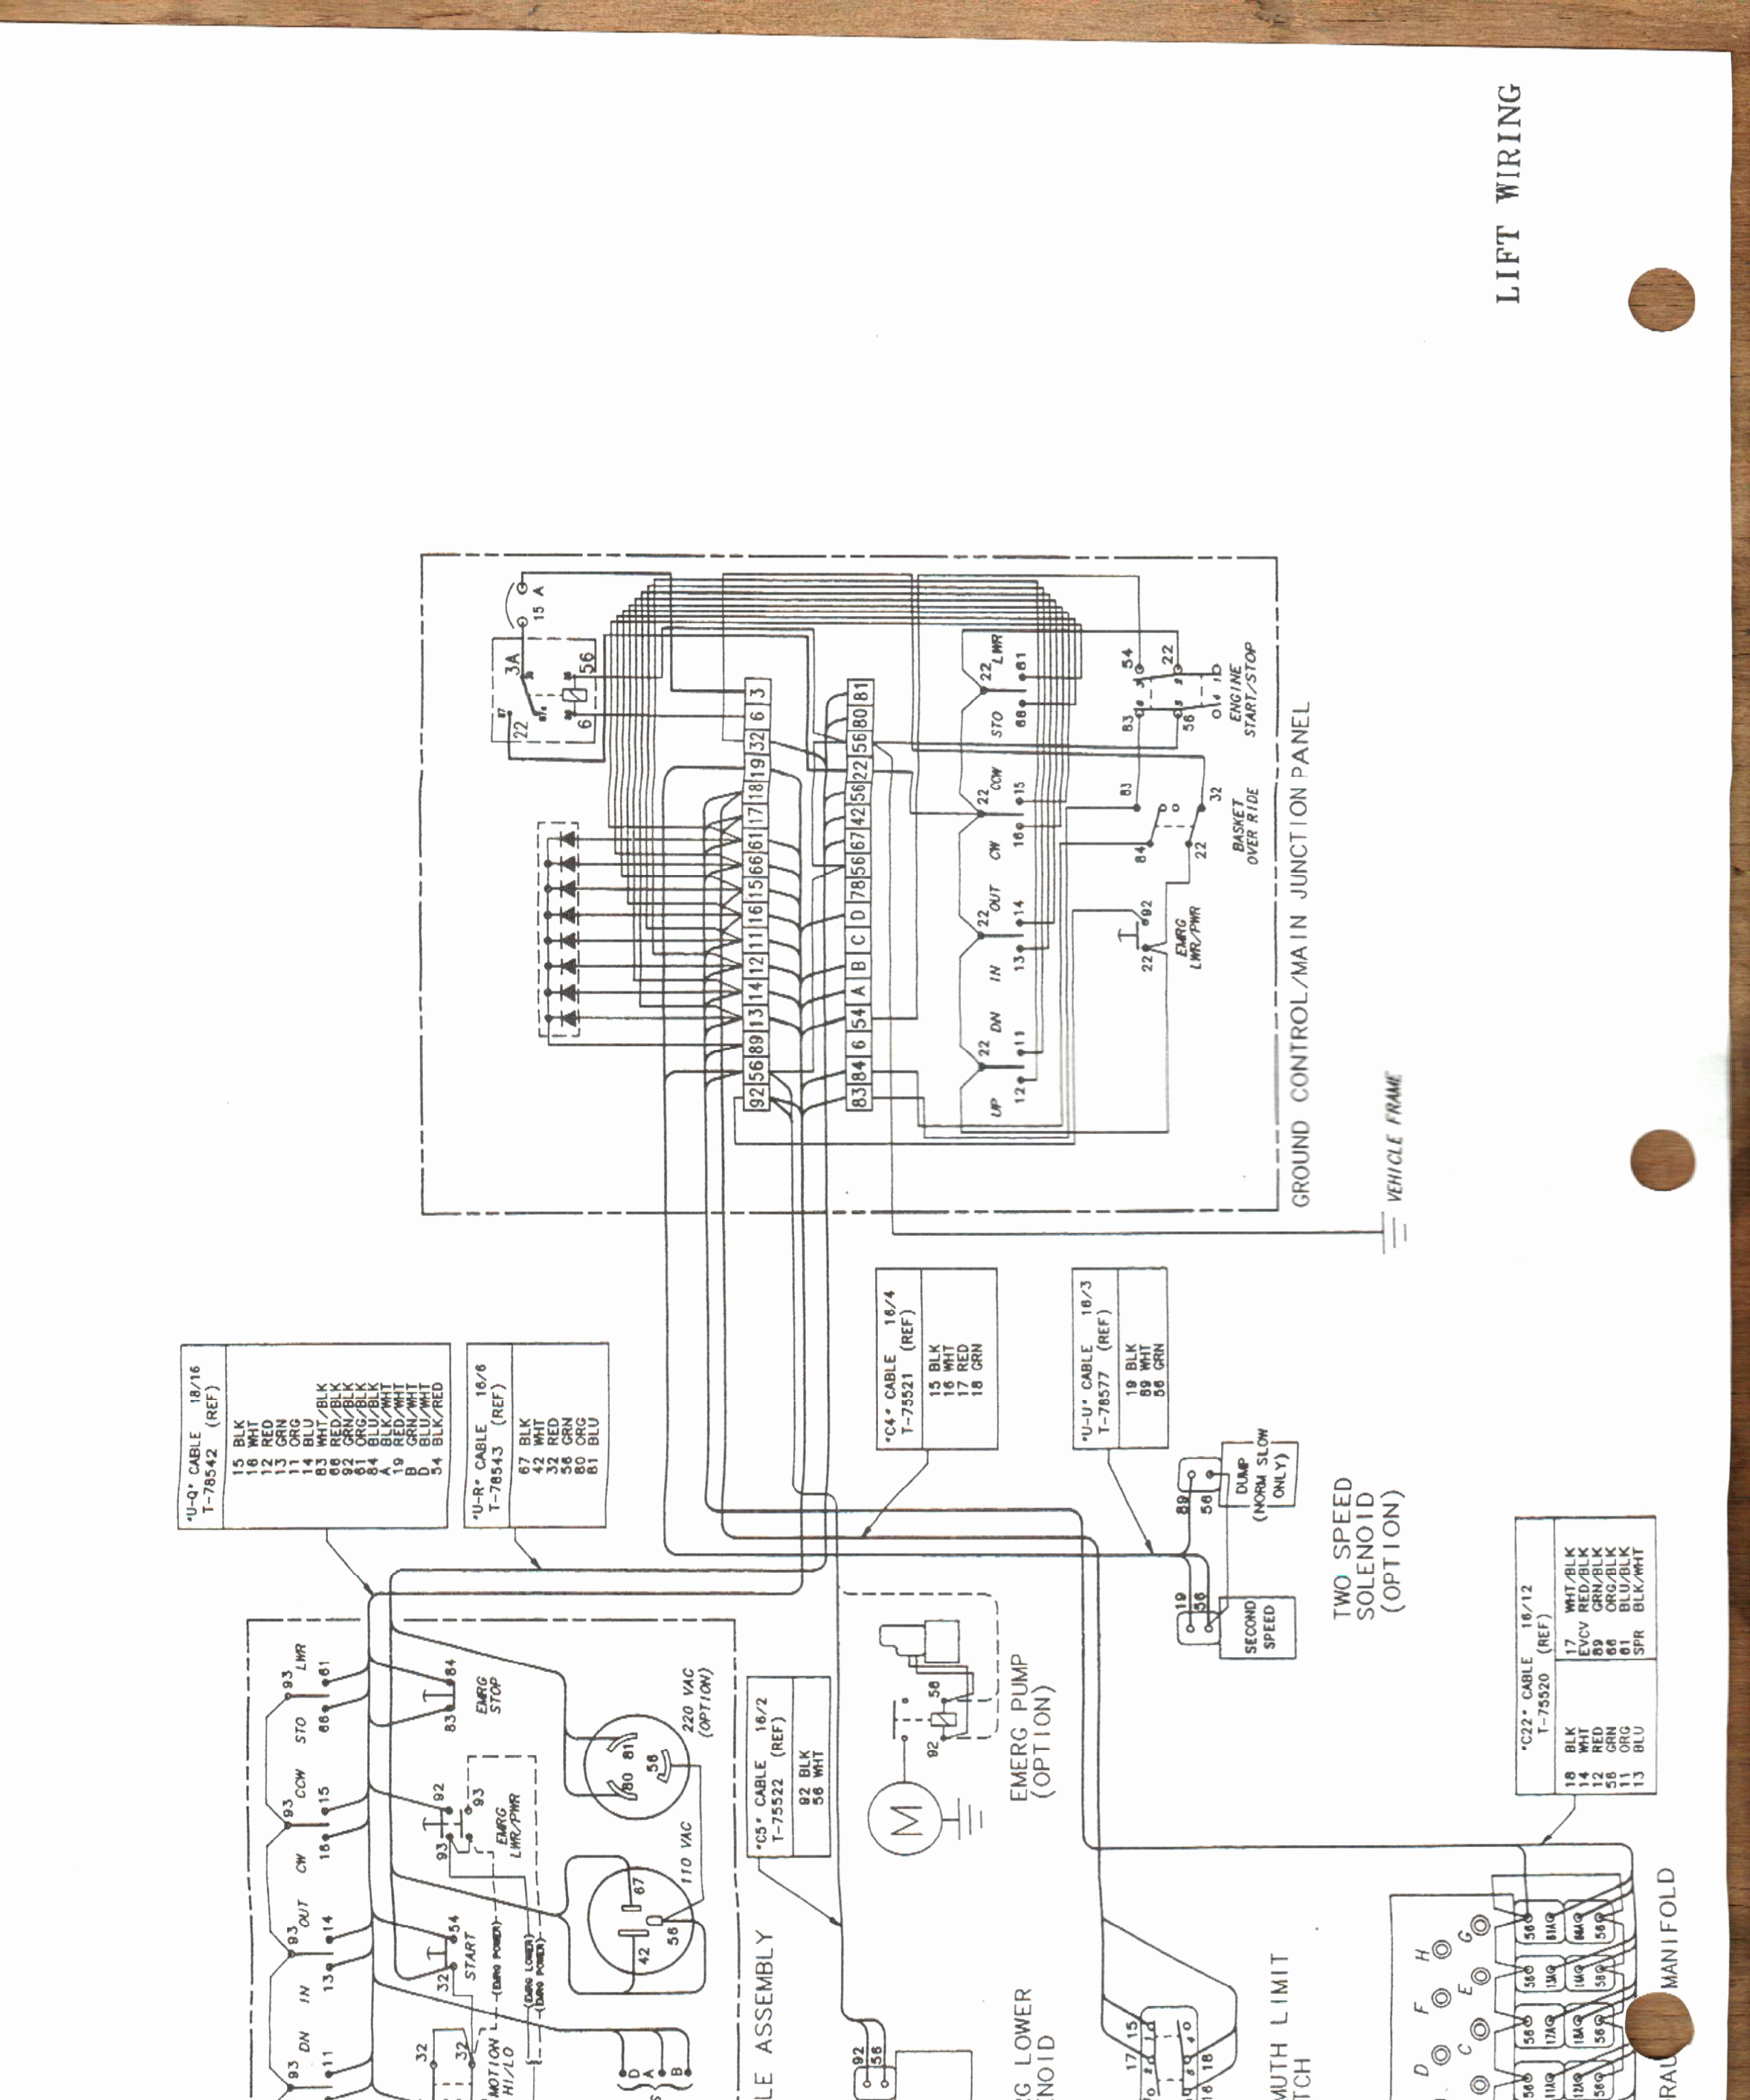 Lift Electrical Wiring Diagram